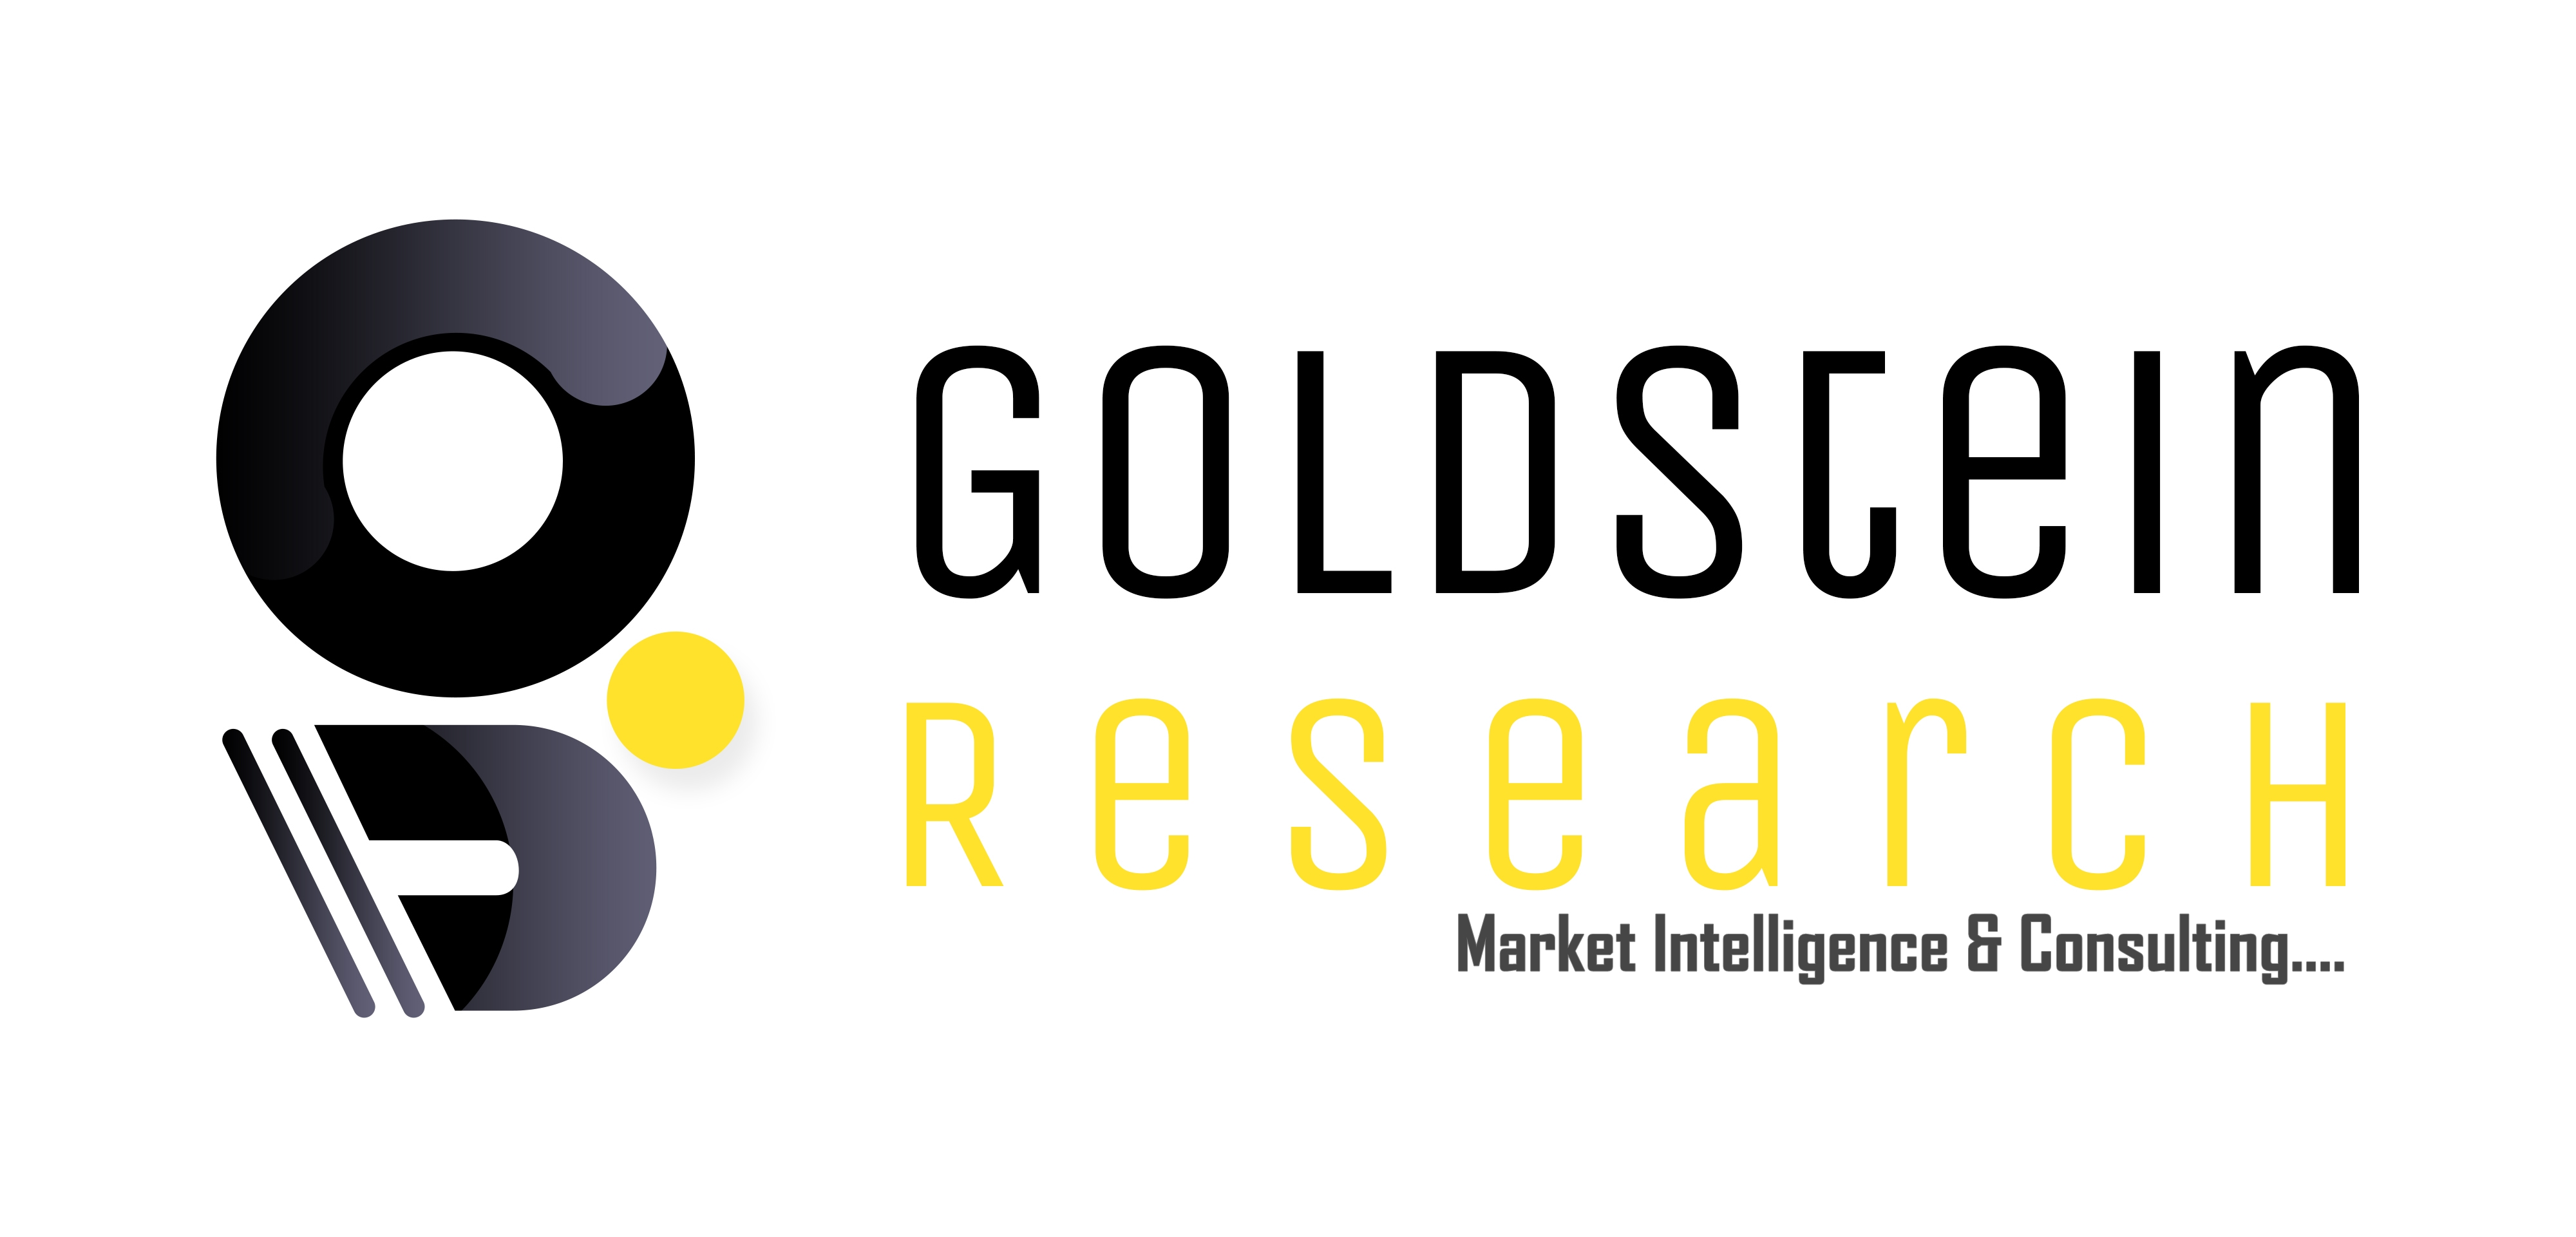 CAGR for Lithium-Ion (Li-ion) Battery Market Assessed at 10.9% through 2025 by Goldstein Research